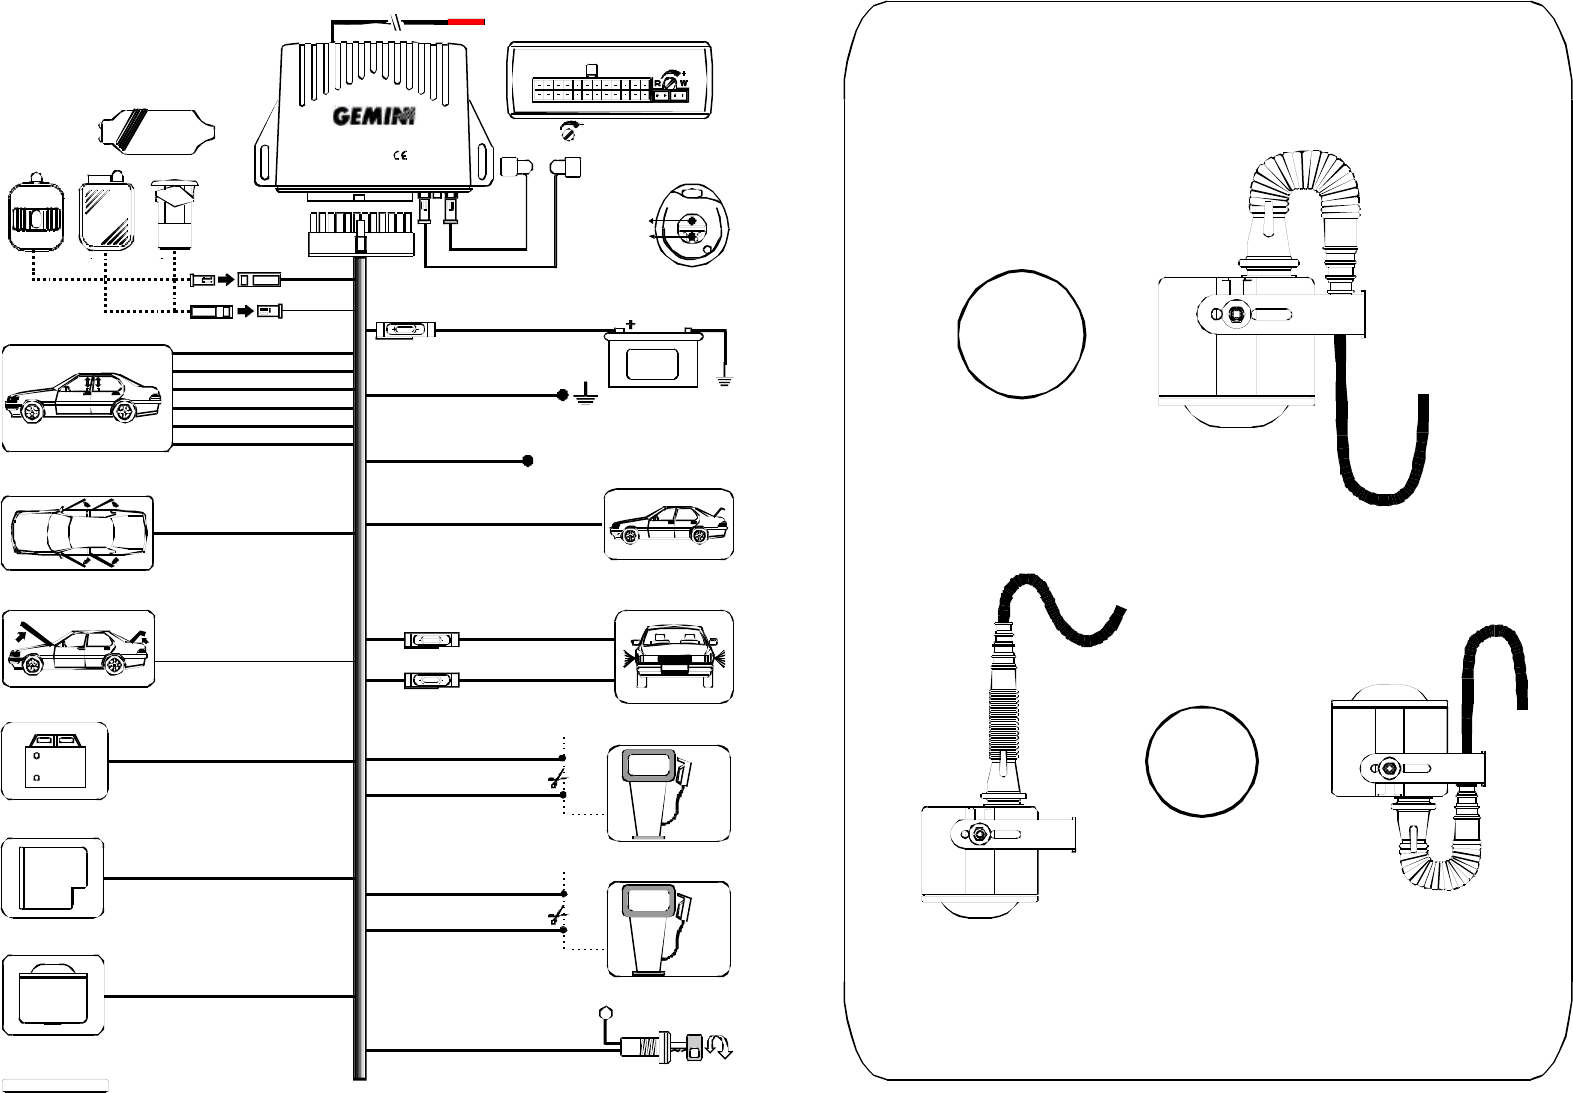 Gemini Alarm System Wiring Diagram on crutchfield wiring gauge